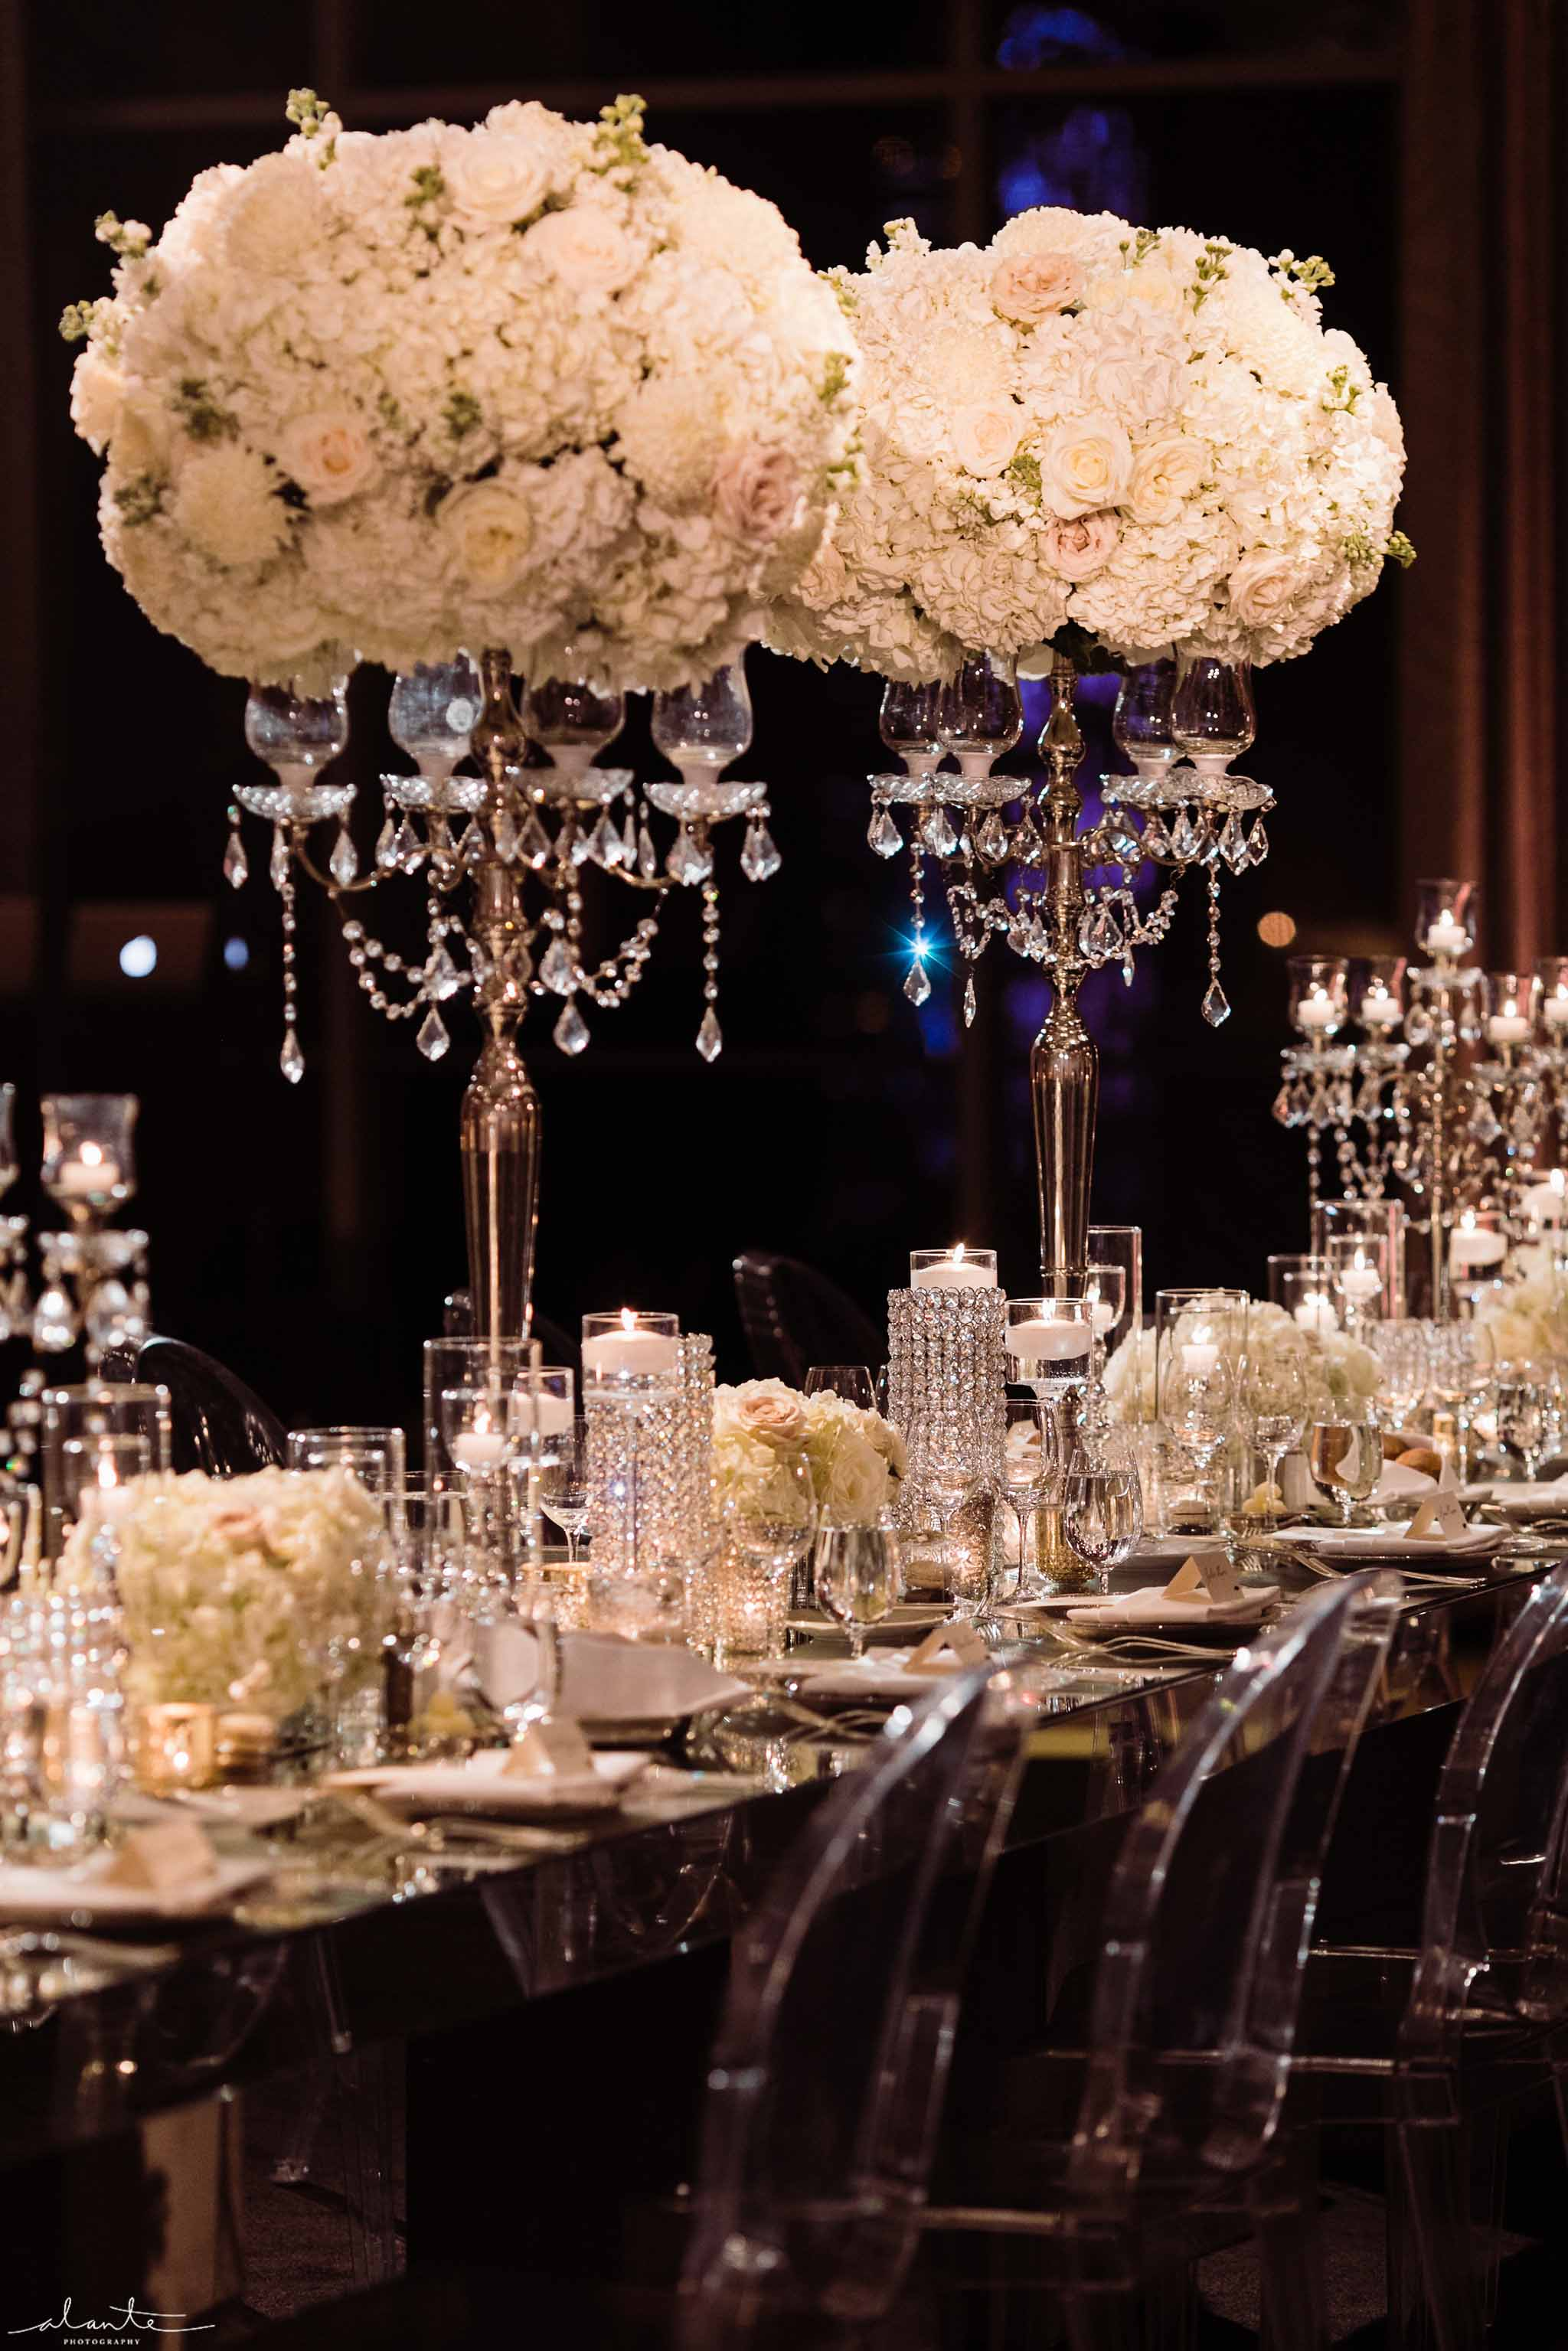 Long head table with elevated white centerpieces on crystal candelabras - Luxury Winter Wedding at the Four Seasons by Flora Nova Design Seattle